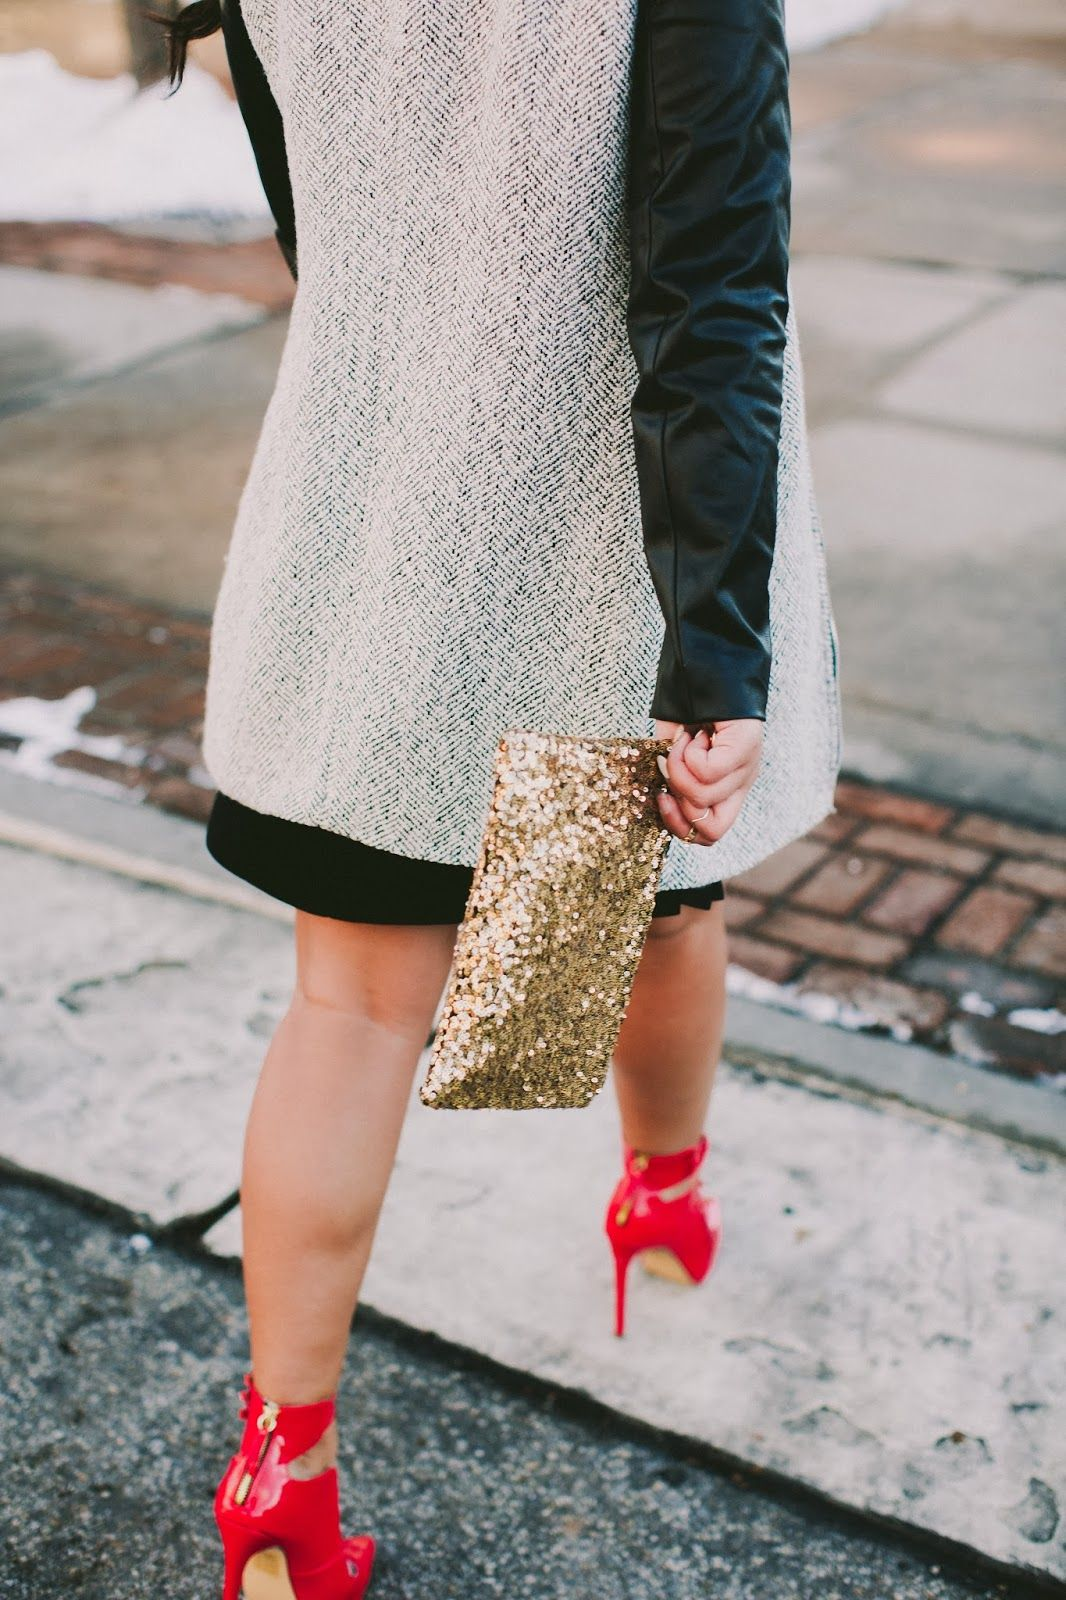 Red heels + Gold glitter clutch + Leather sleeves = <3